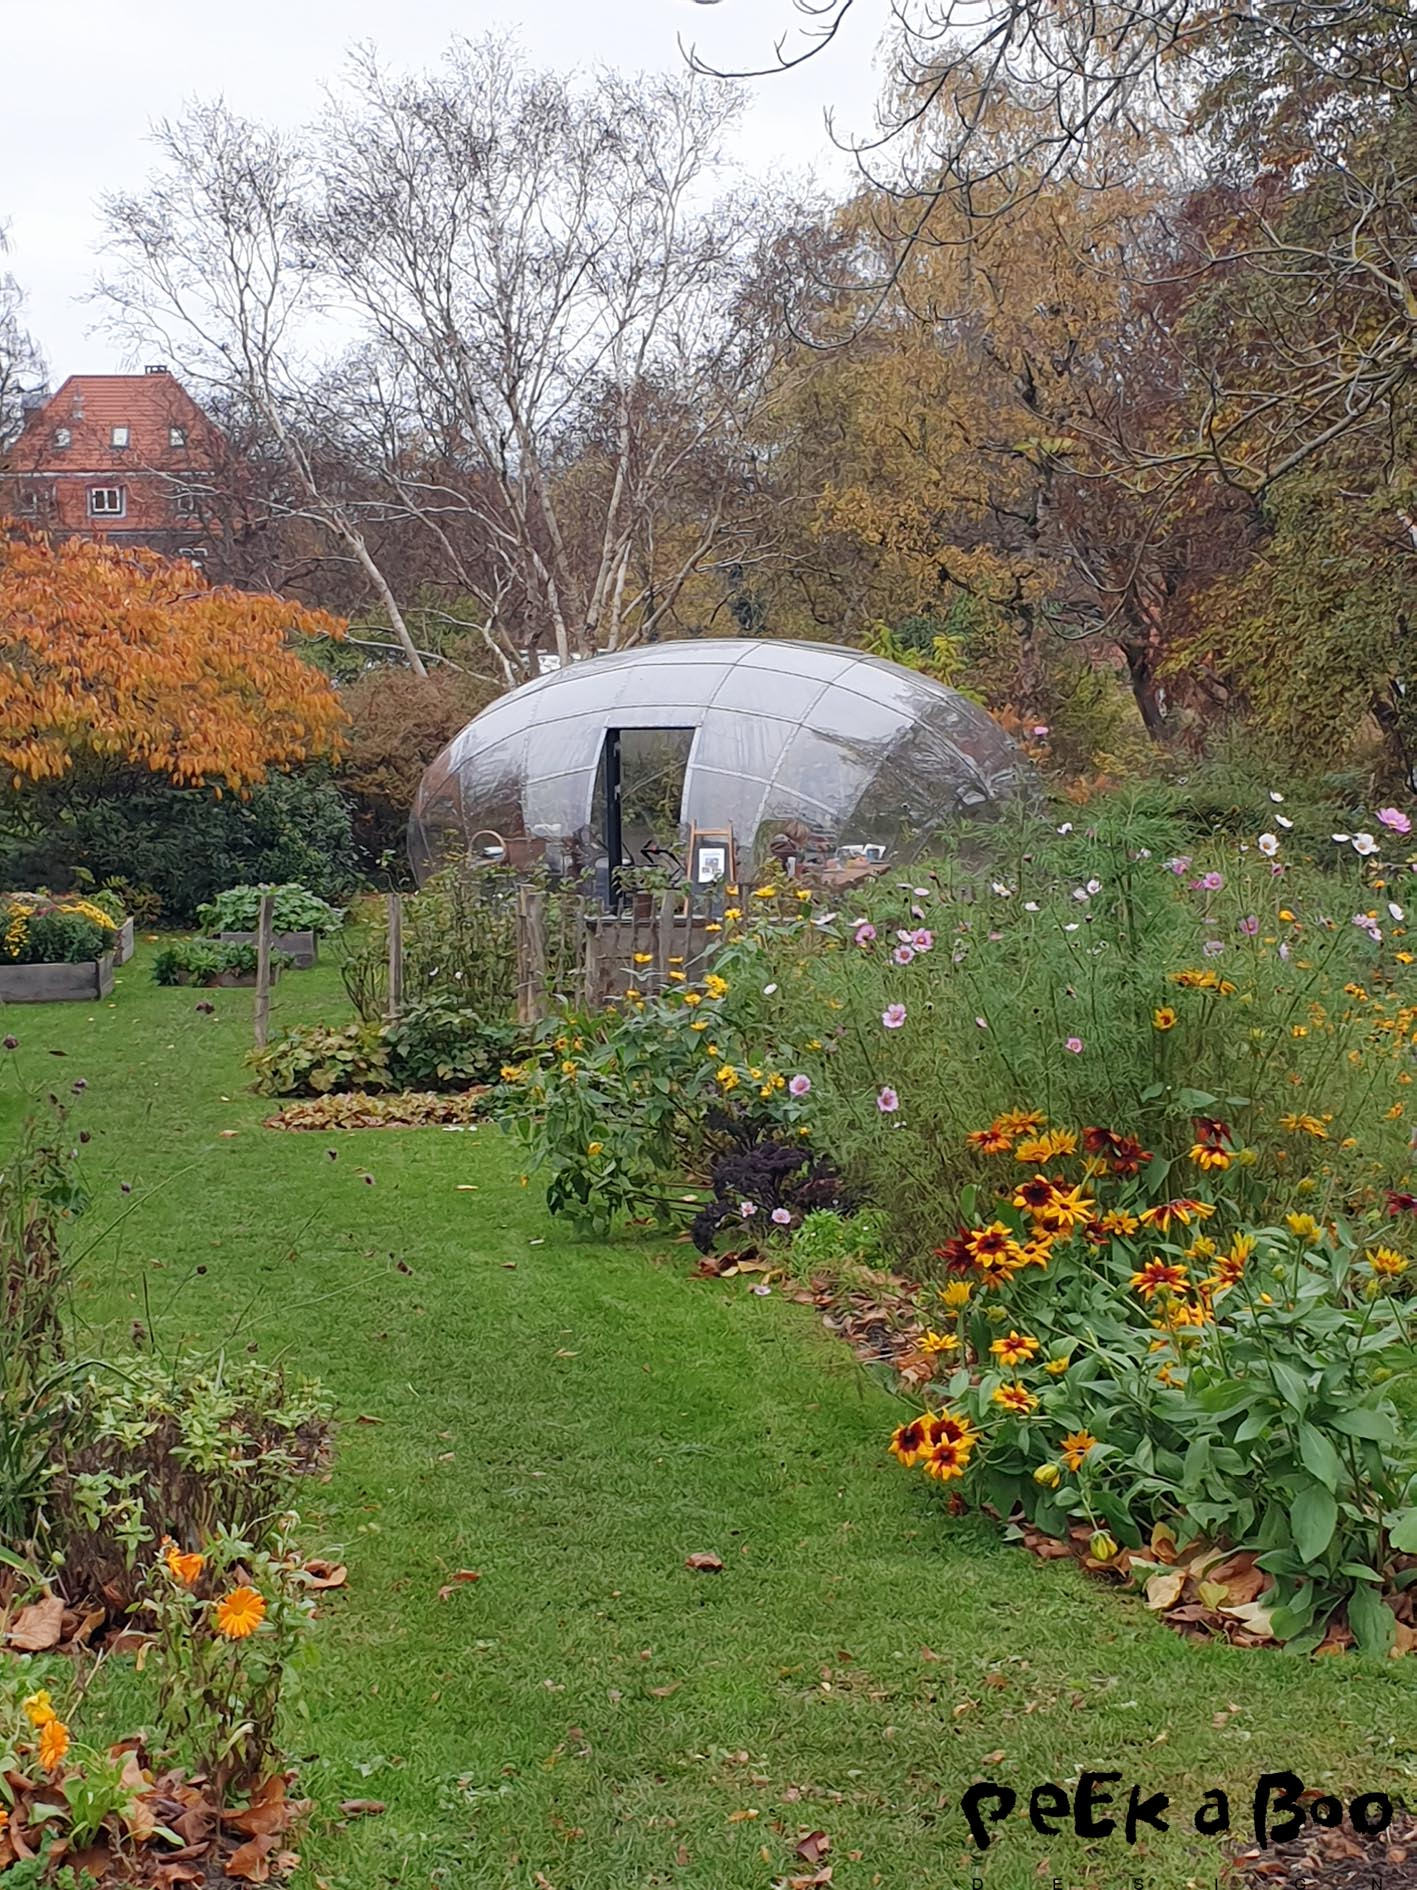 The social flowergarden by the hospital with the dome greenhouse.